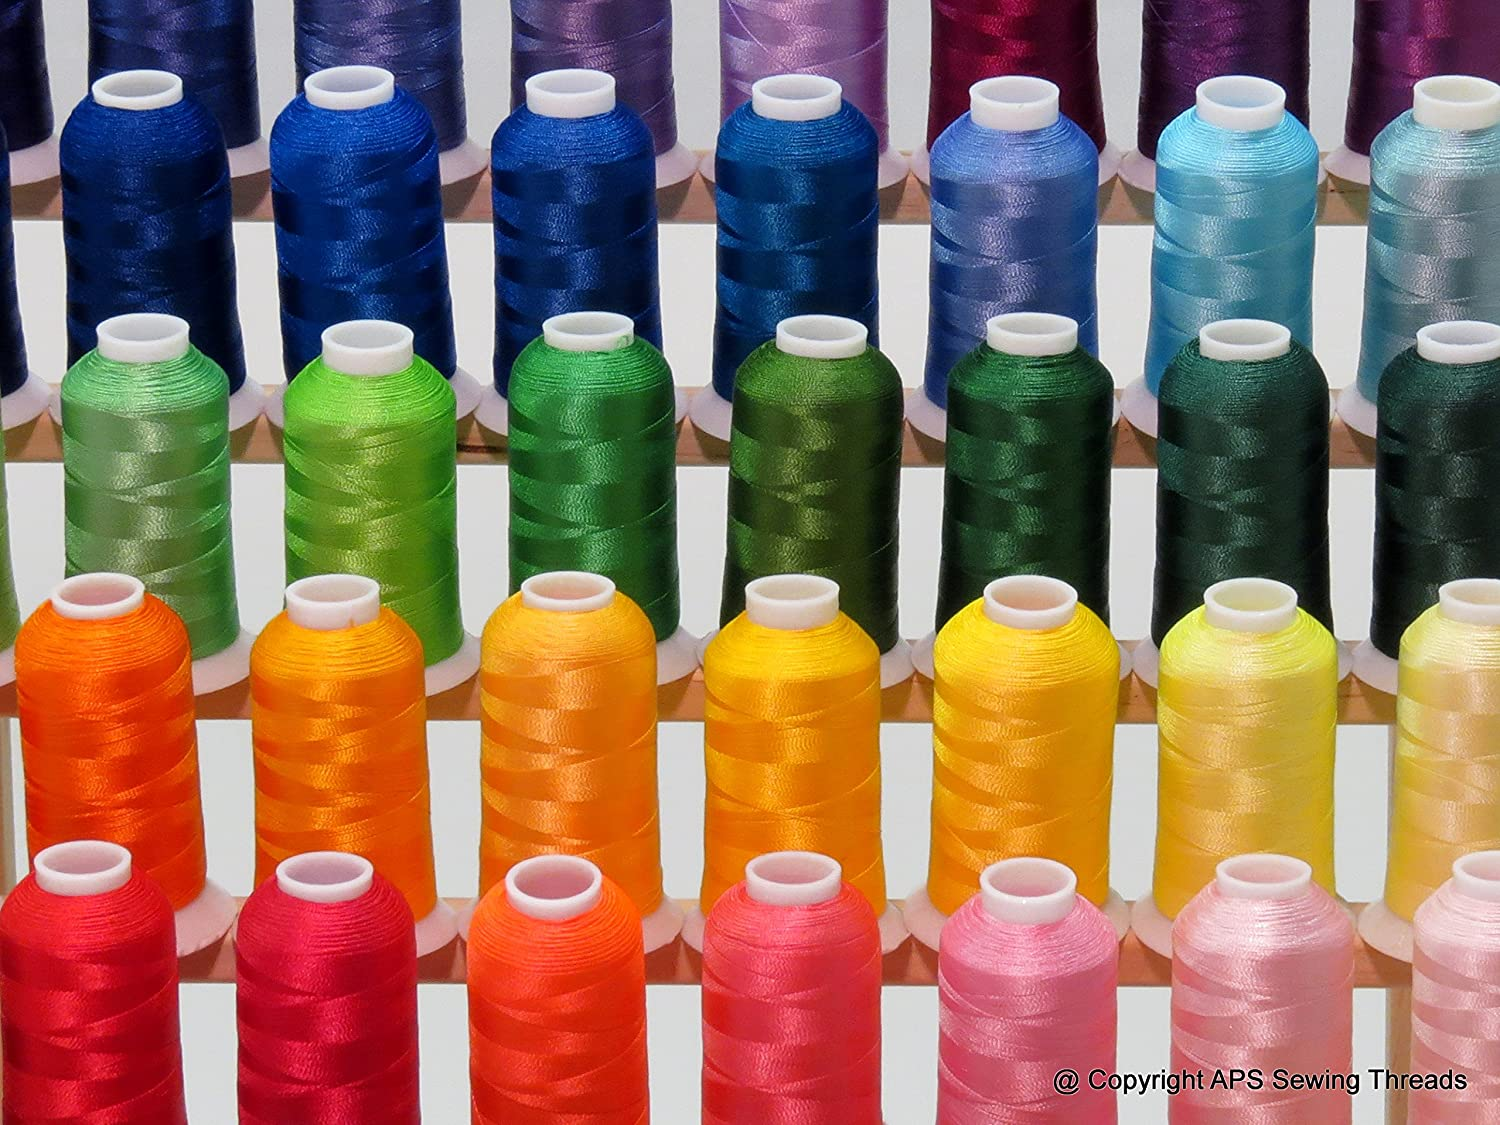 63 Brother Colors Embroidery Machine Thread Set 120D//2 40weight for Brother Babylock Janome Singer Pfaff Husqvarna Bernina Machines